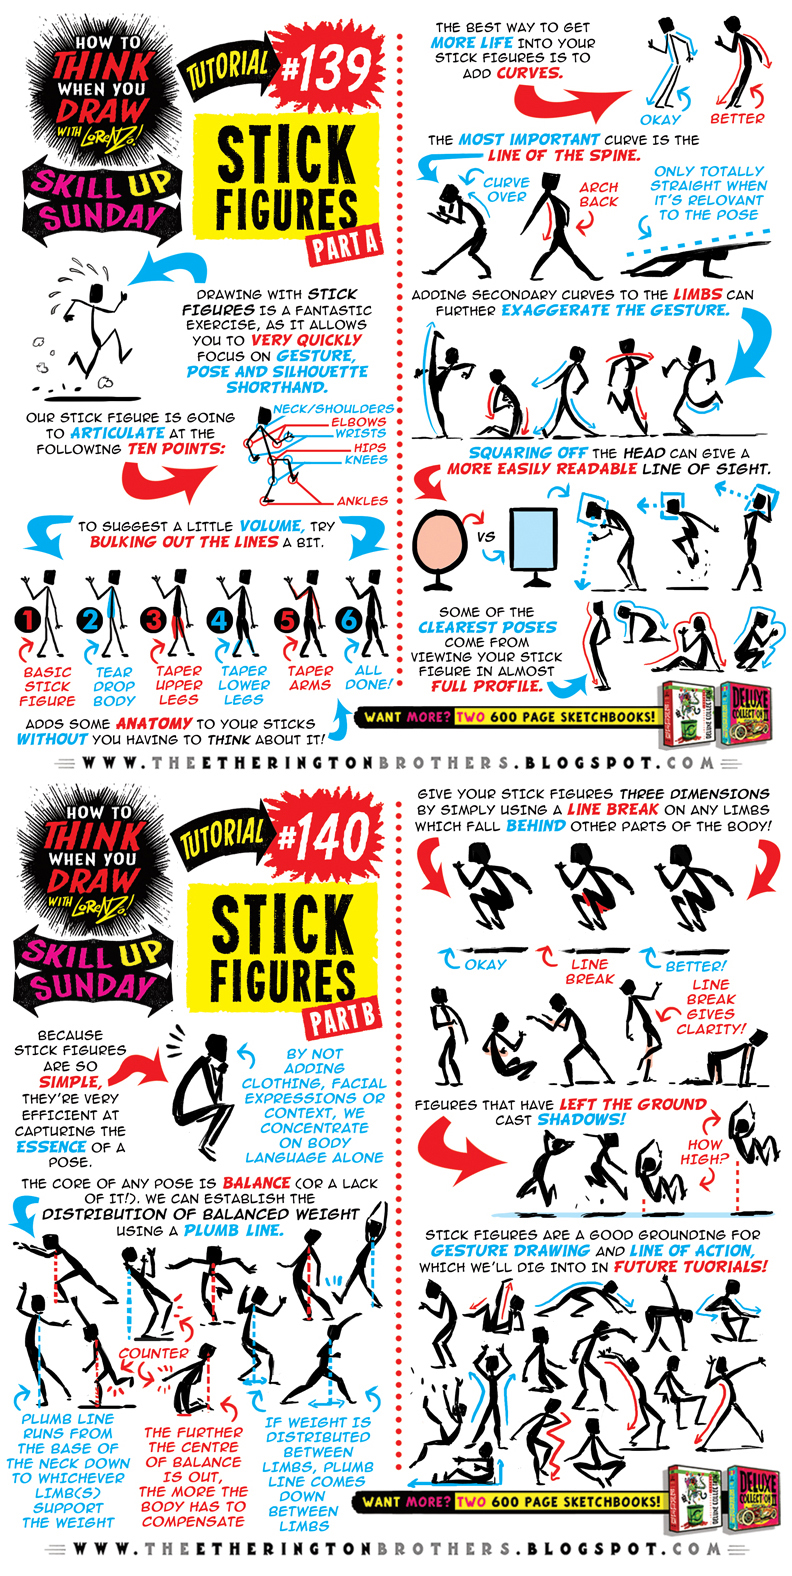 How to draw STICK FIGURES tutorial by STUDIOBLINKTWICE